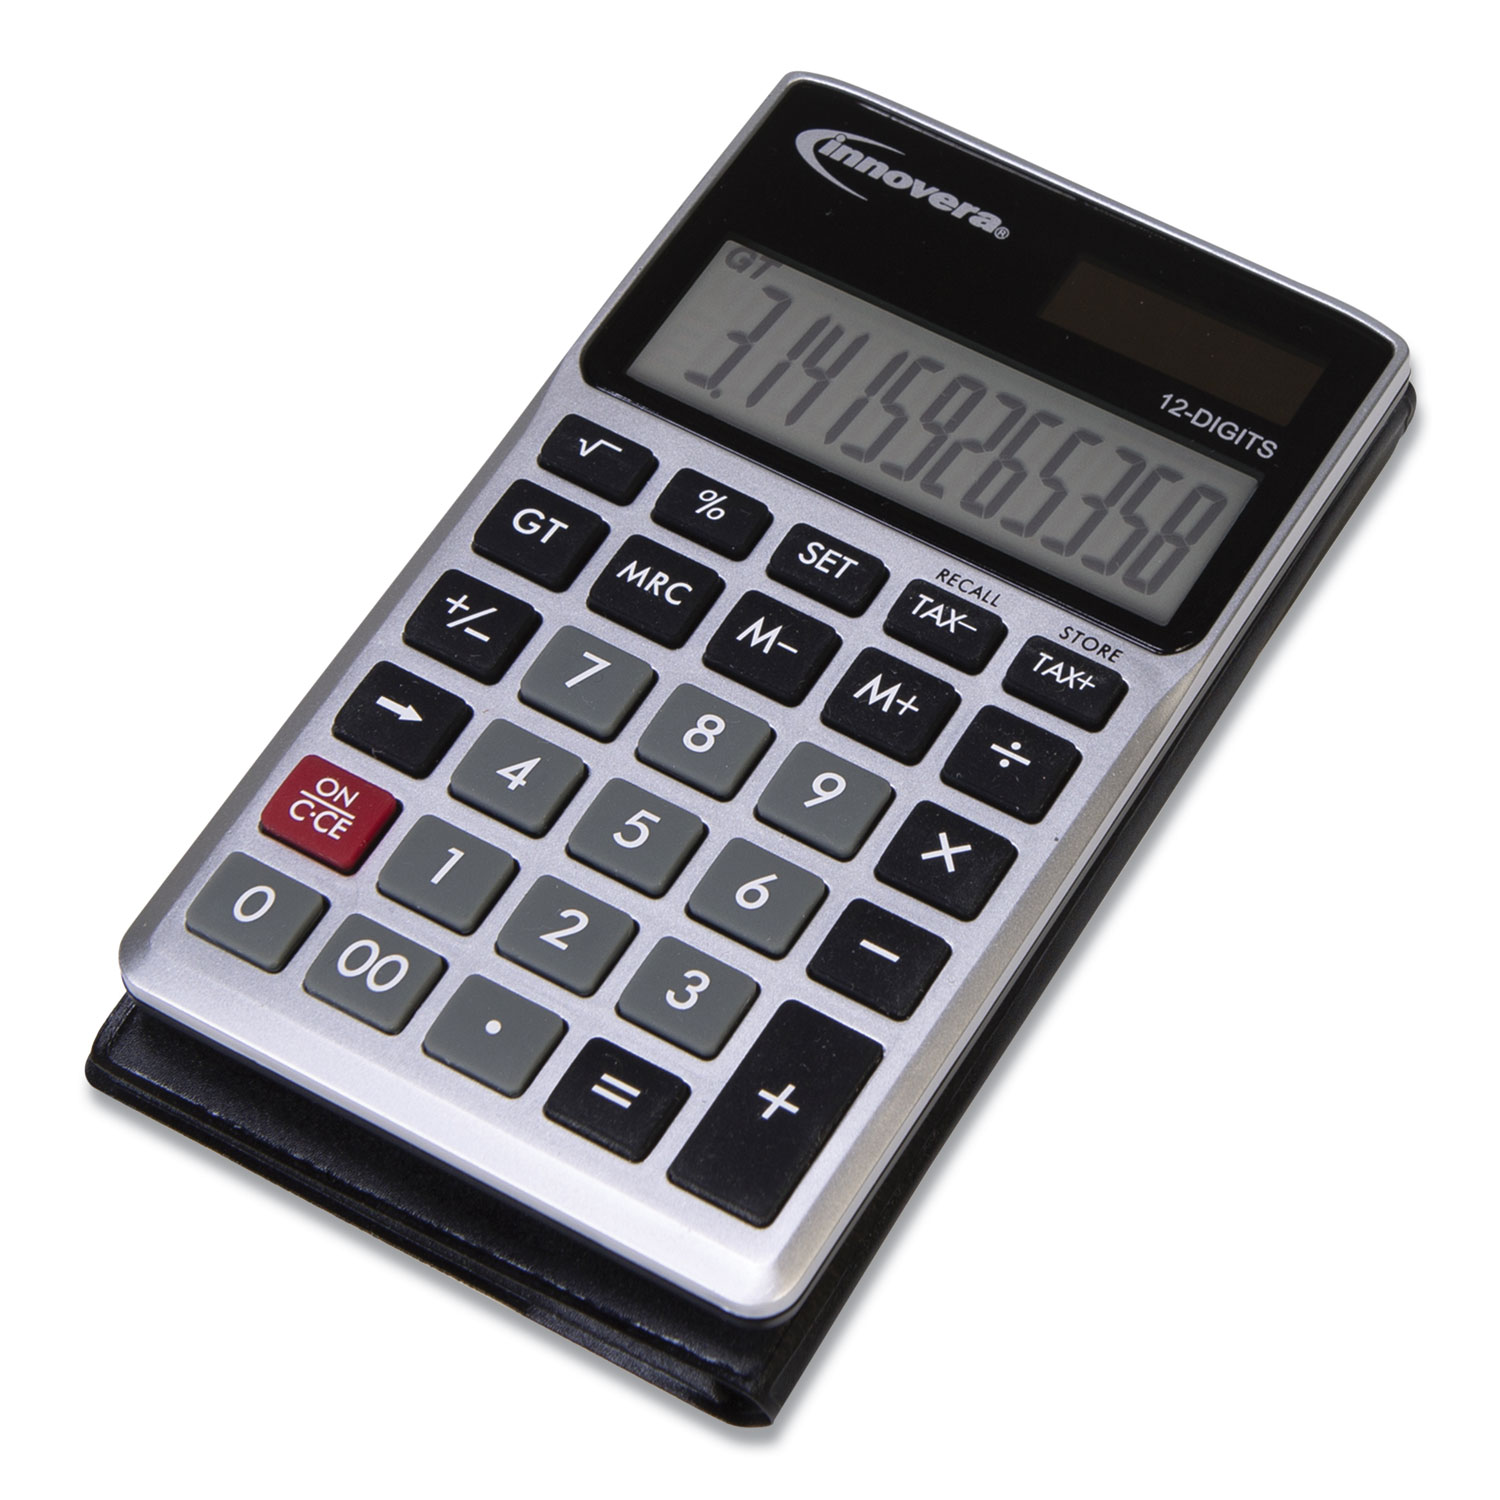 Innovera 15922 Pocket Calculator, Dual Power, 12-Digit LCD Display